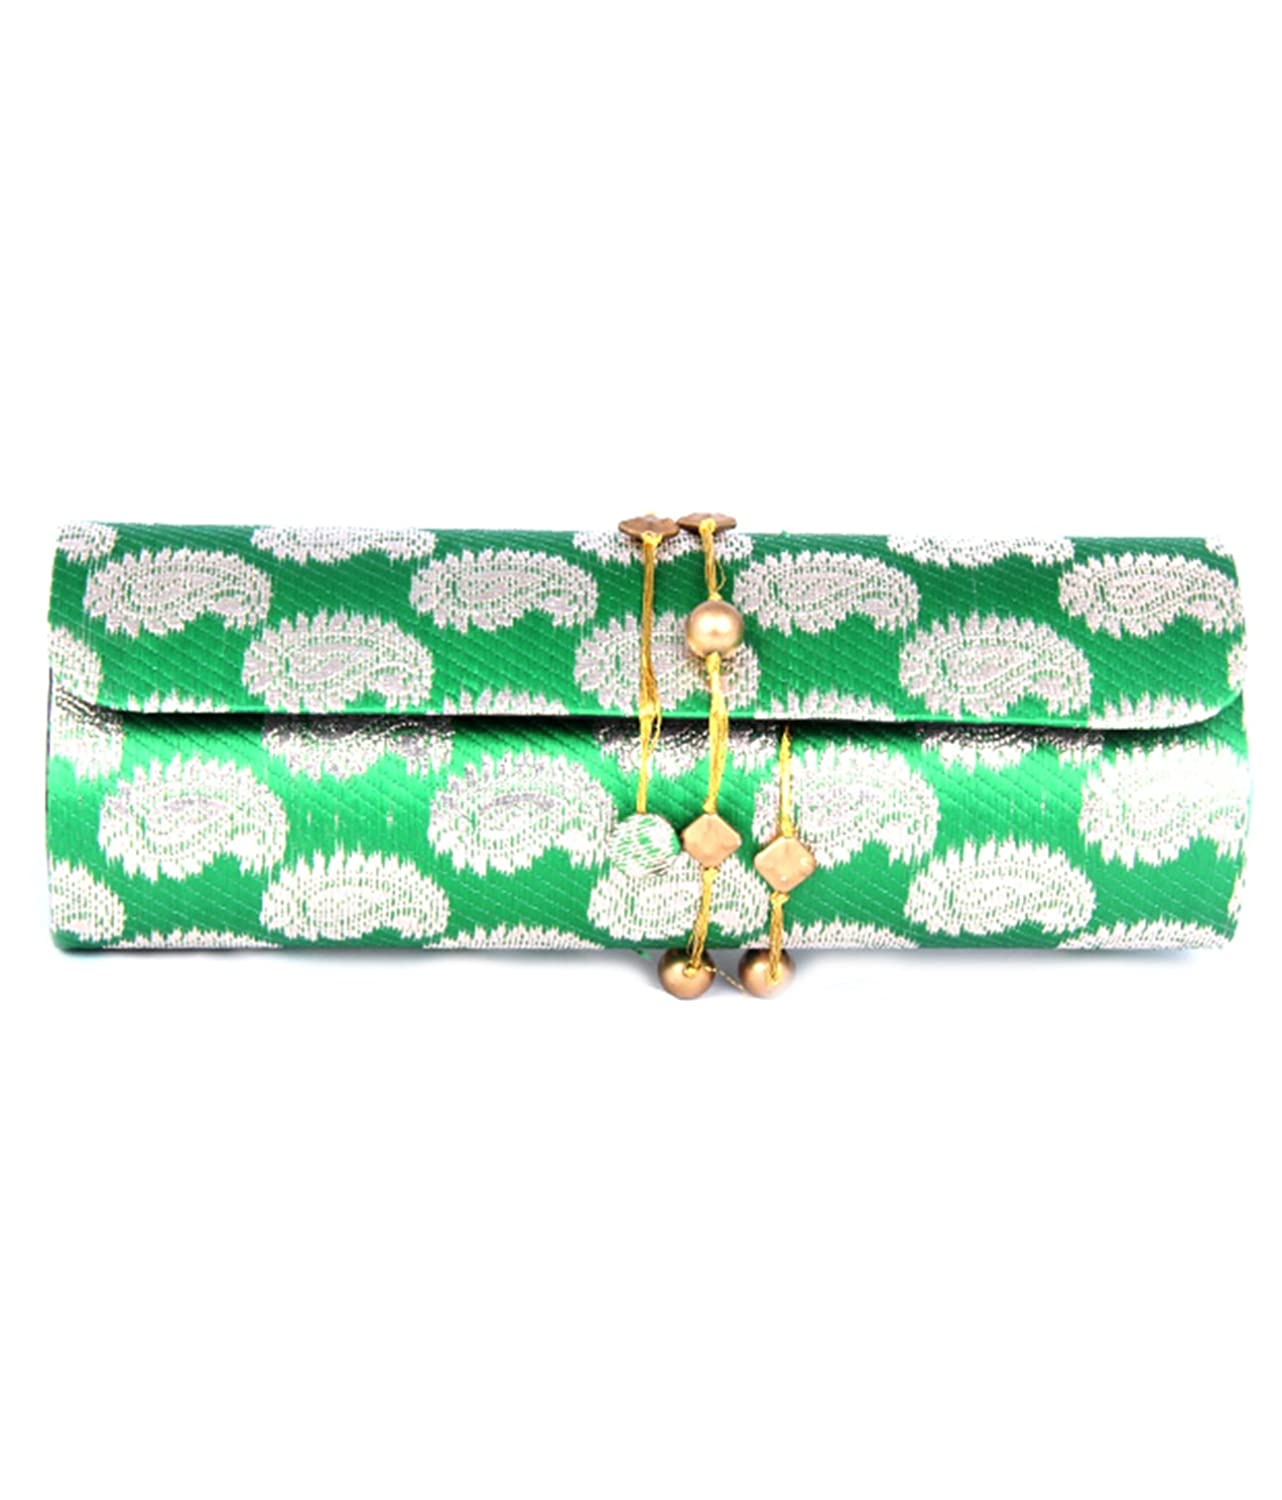 Favola dholak style silk brocade green clutch bags